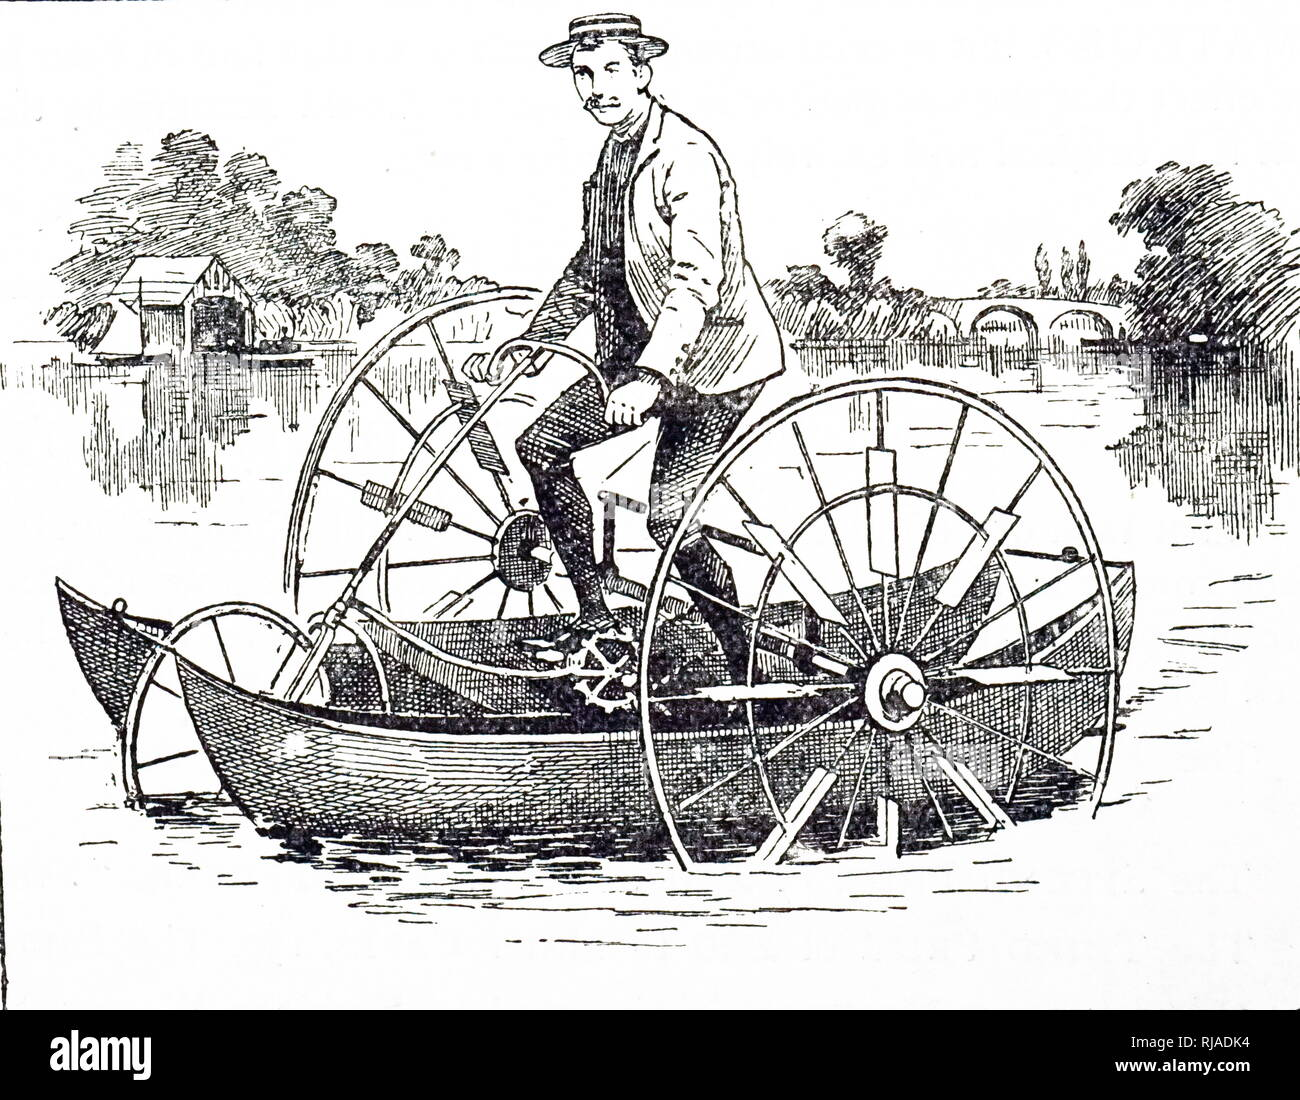 An engraving depicting a combined tricycle and boat for use on land or water. Dated 19th century - Stock Image